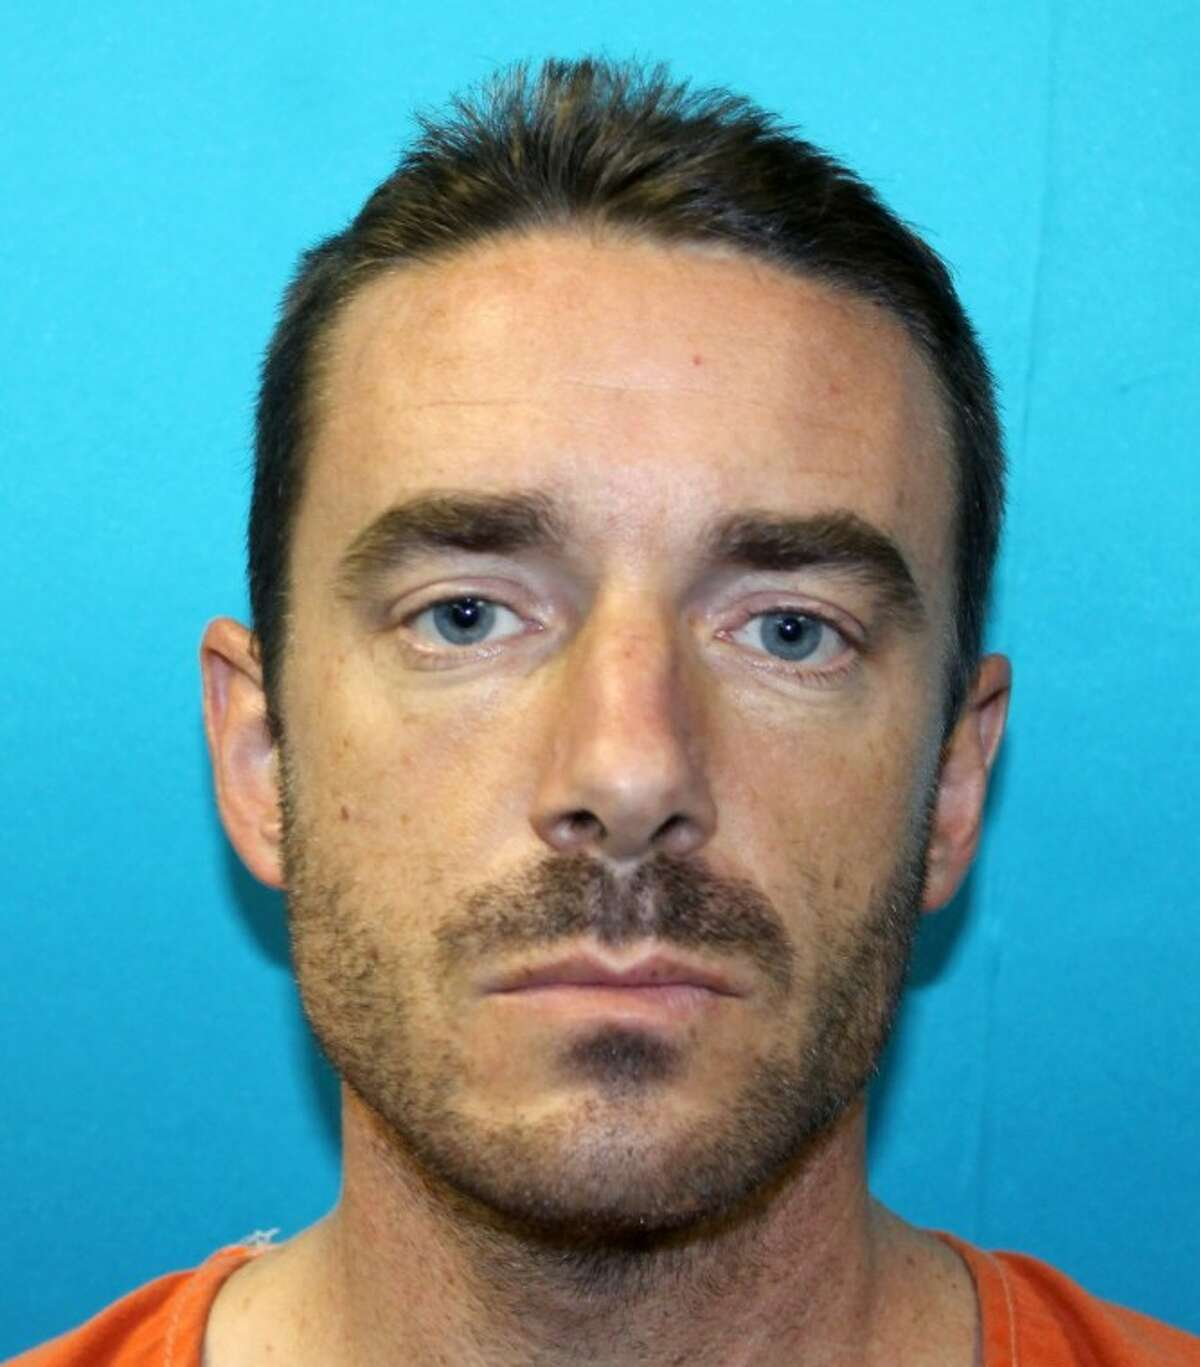 This handout photo provided by the Richland Hills Police Department shows Brent Troy Bartel.